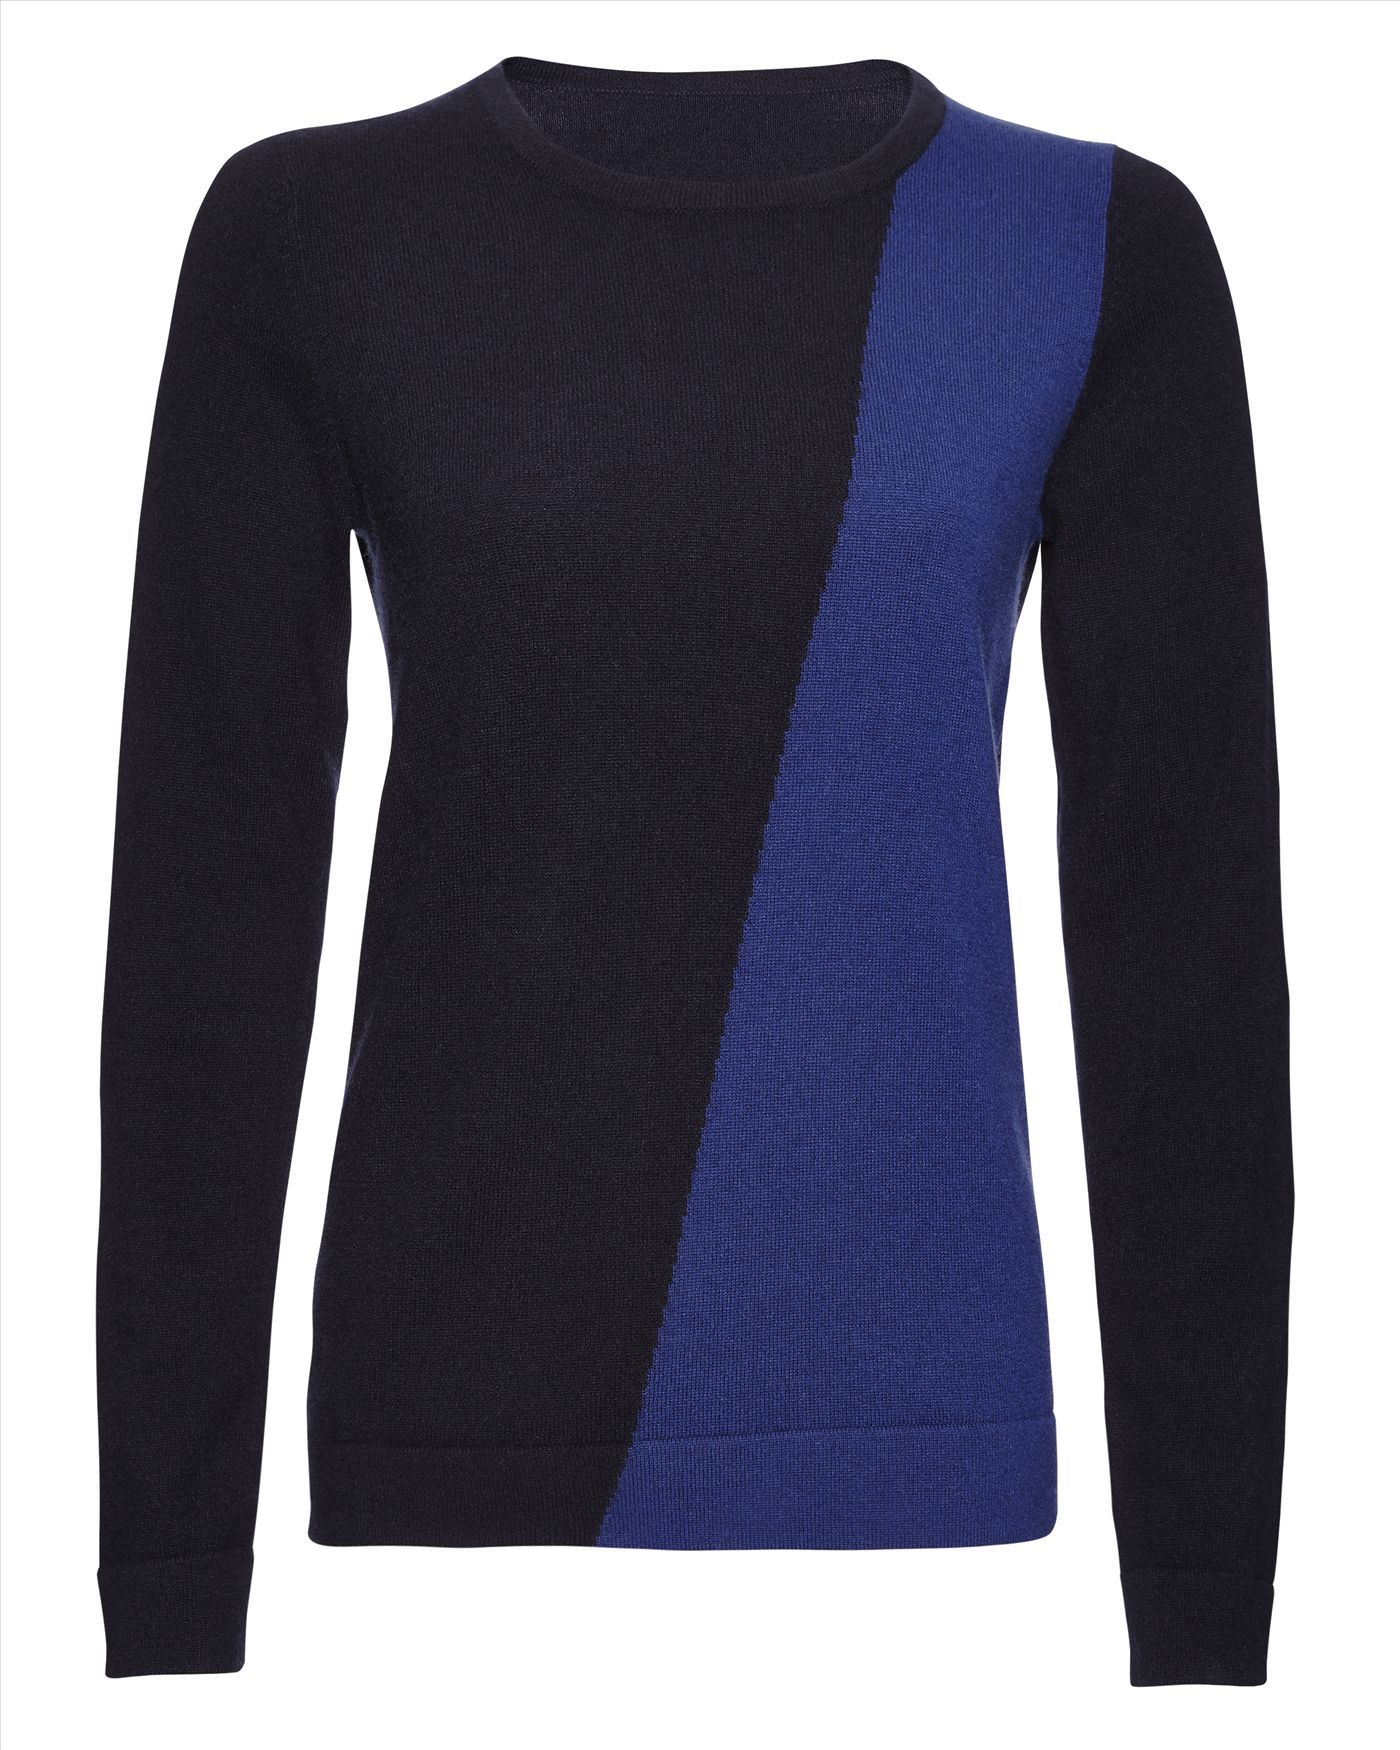 Cashmere Asymmetric Sweater Womens Clothing Jaeger Sweaters Asymmetrical Sweater Clothes